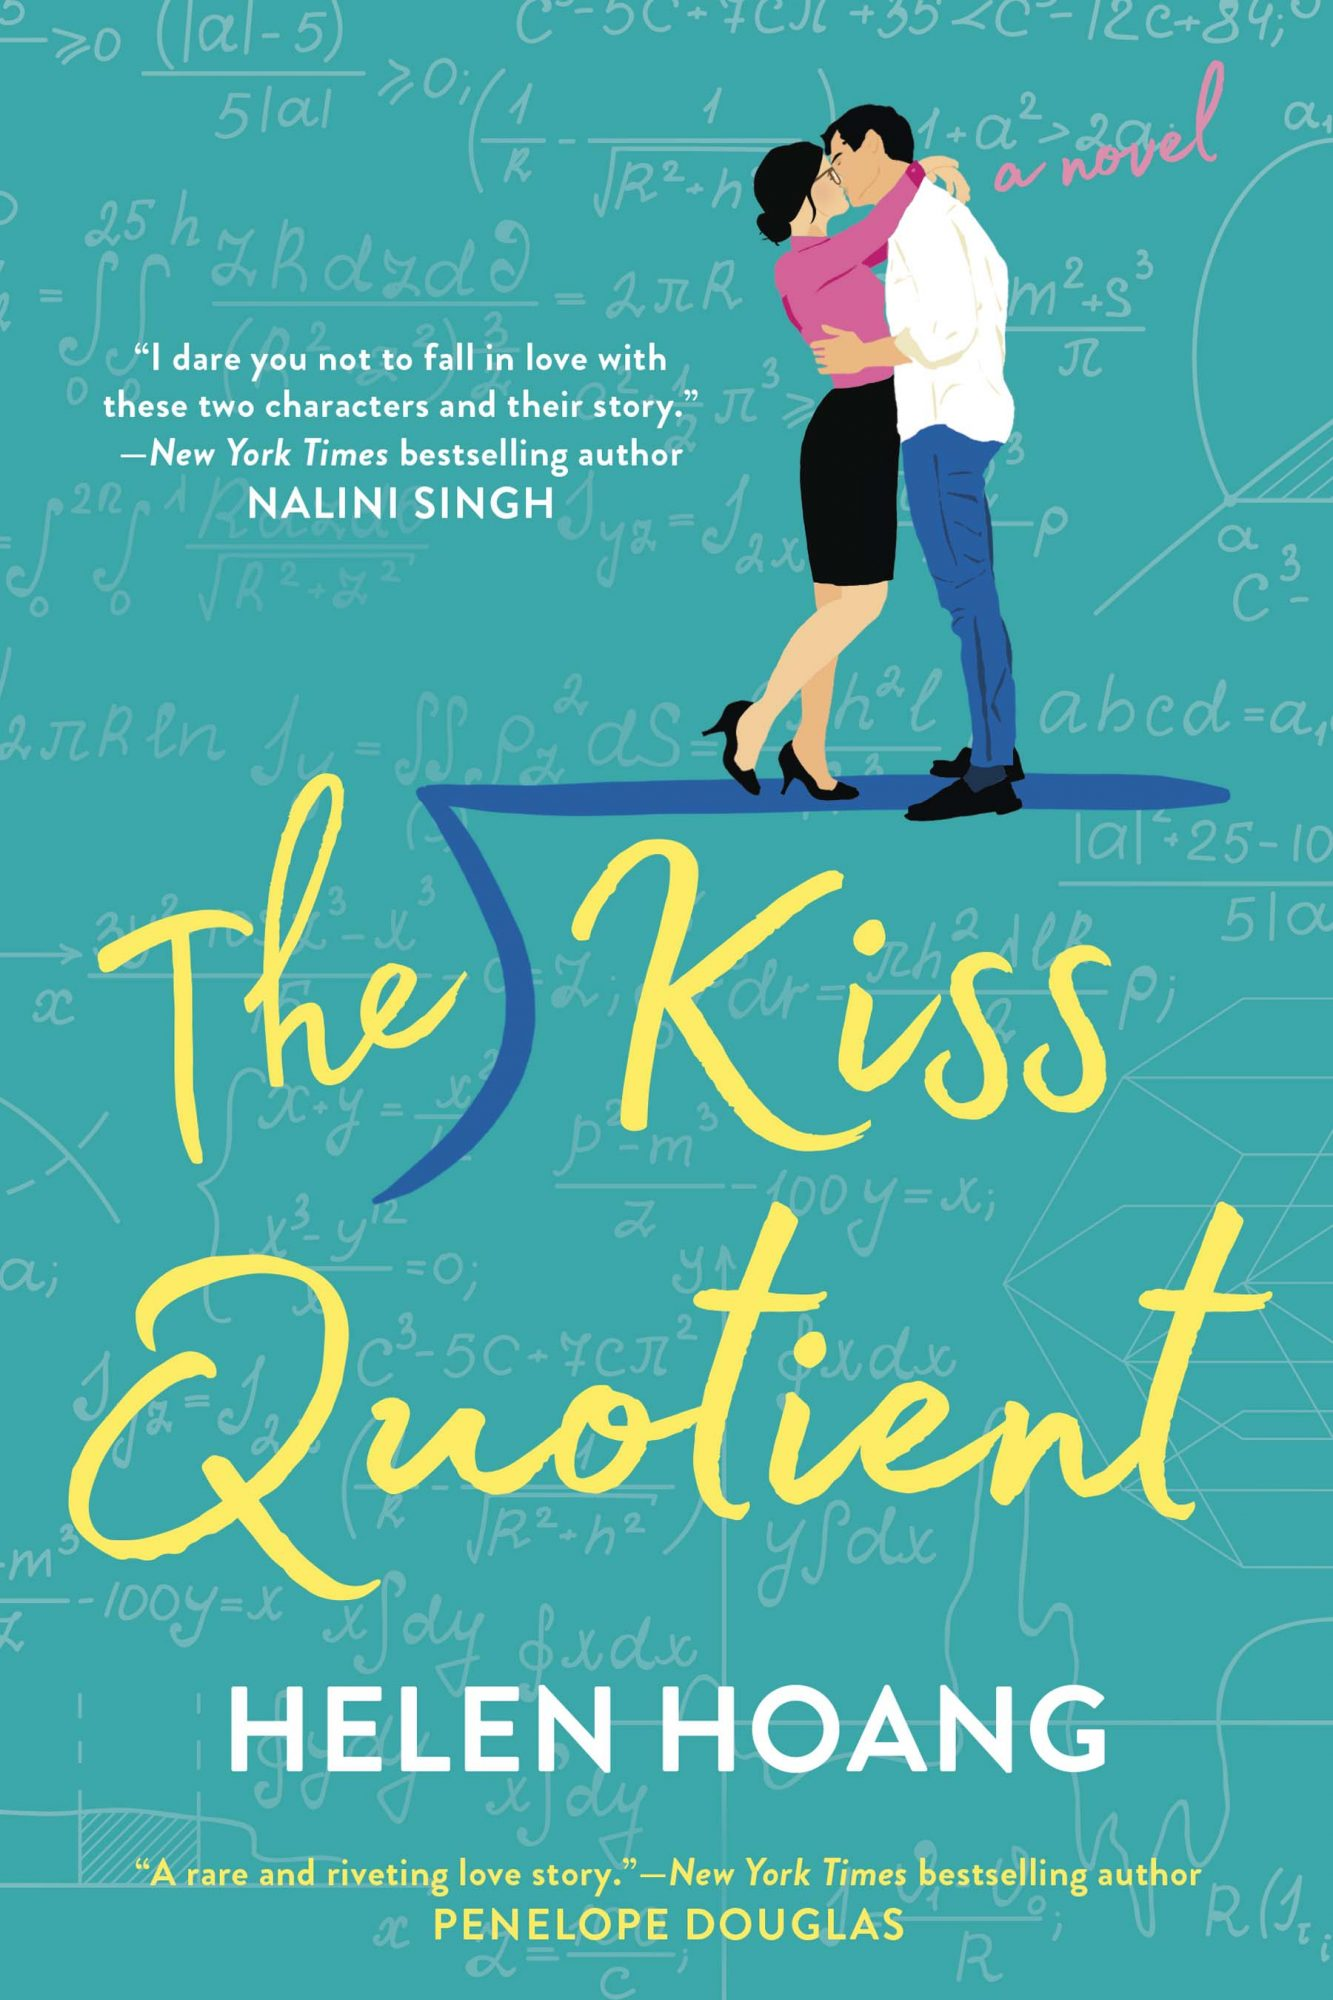 The Kiss QuotientBy HELEN HOANGcr: Berkley